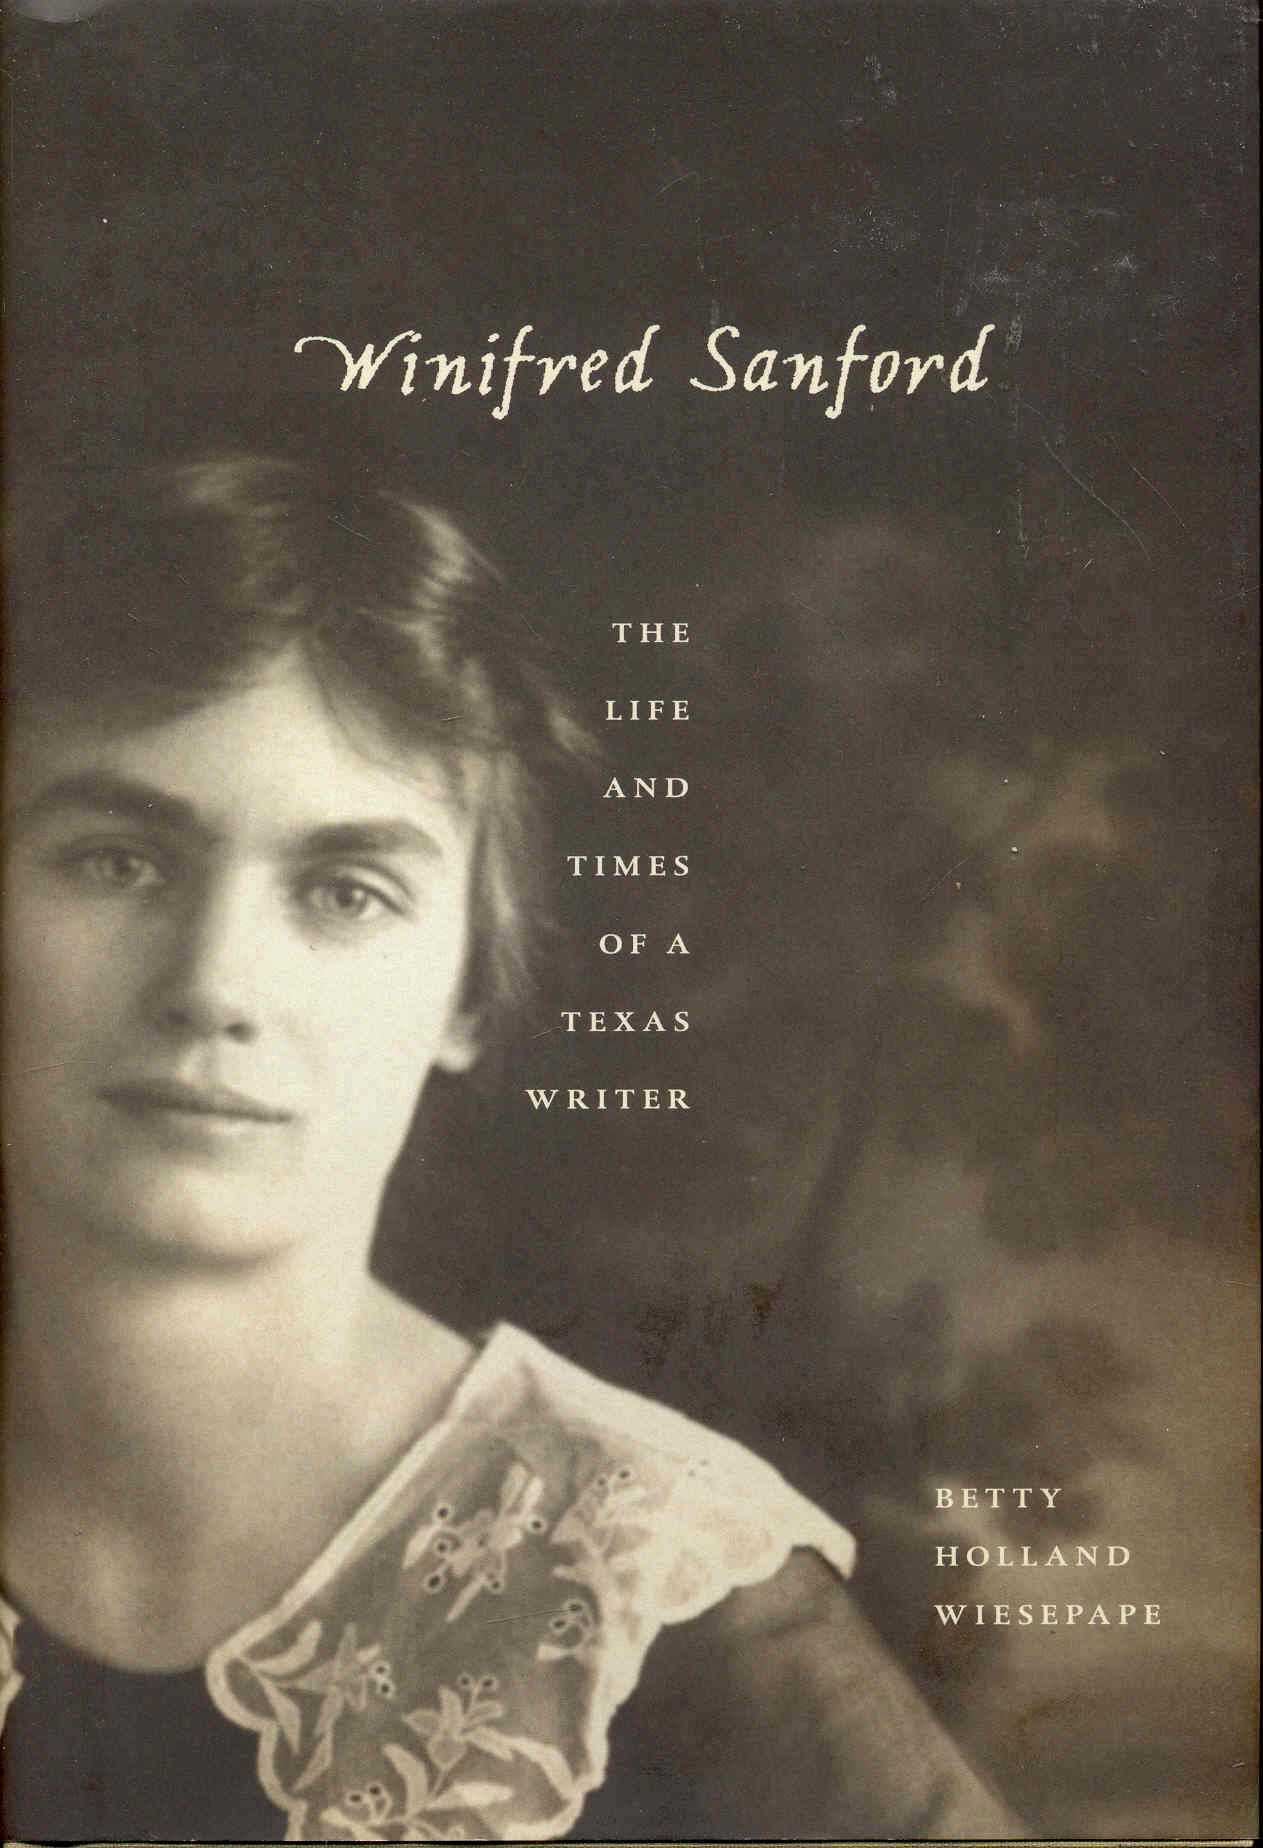 Image for Winifred Sanford: The Life and Times of a Texas Writer